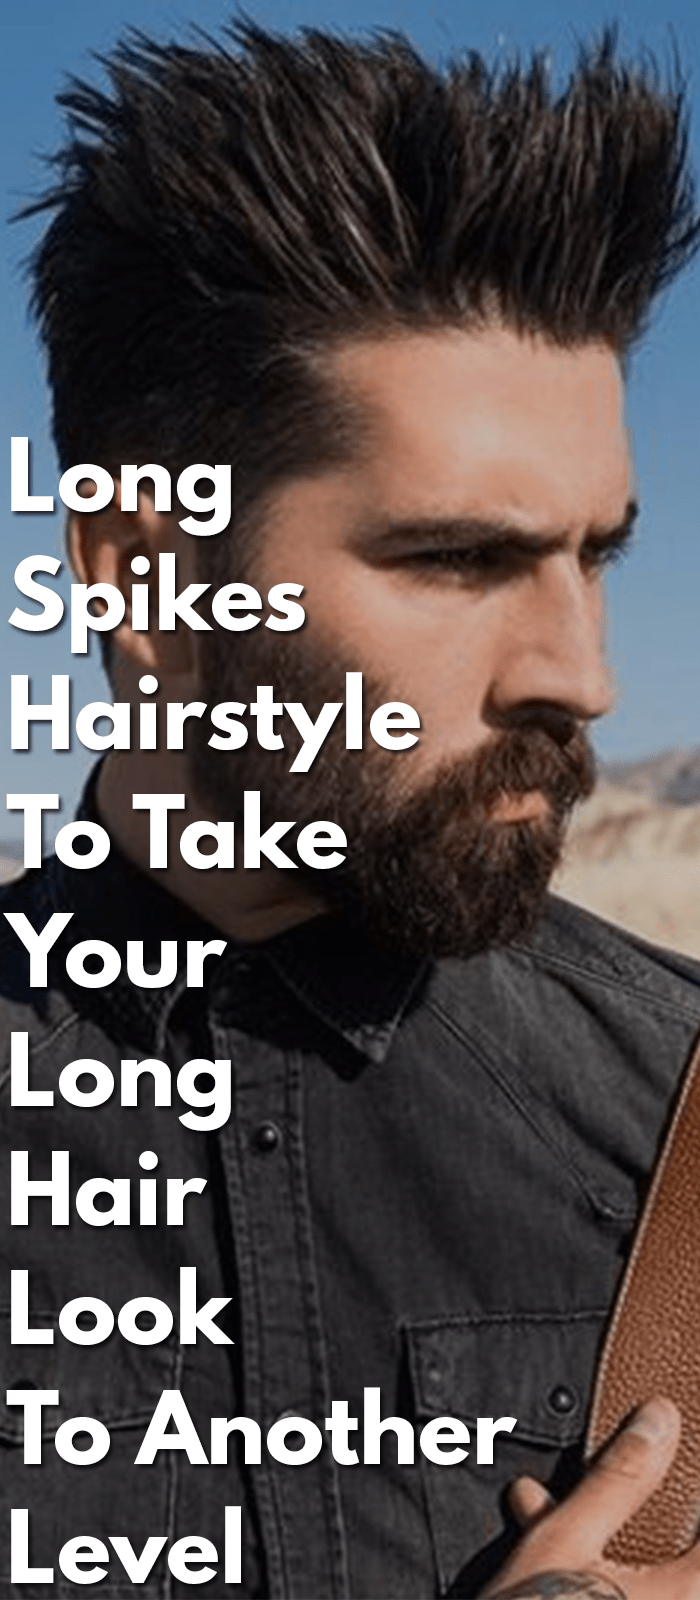 Long spikes hairstyle to take your long hair look to another level